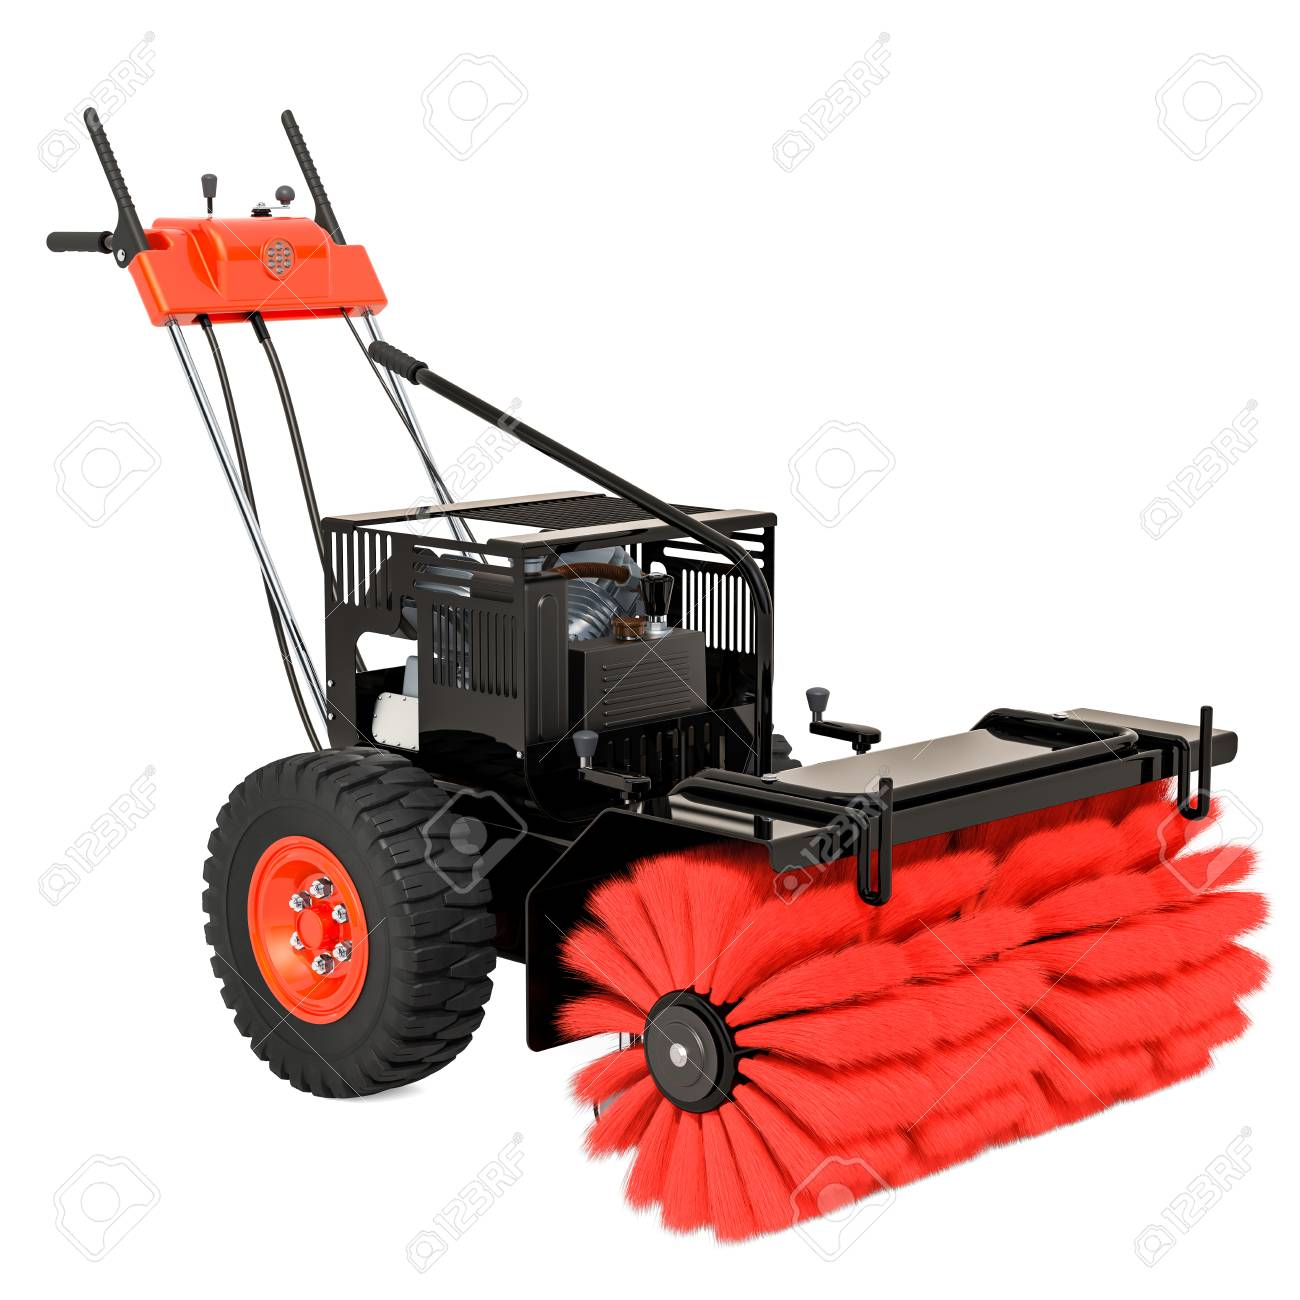 Snow Sweeper Power Brush Broom Industrial 3D Rendering Isolated 1300x1300